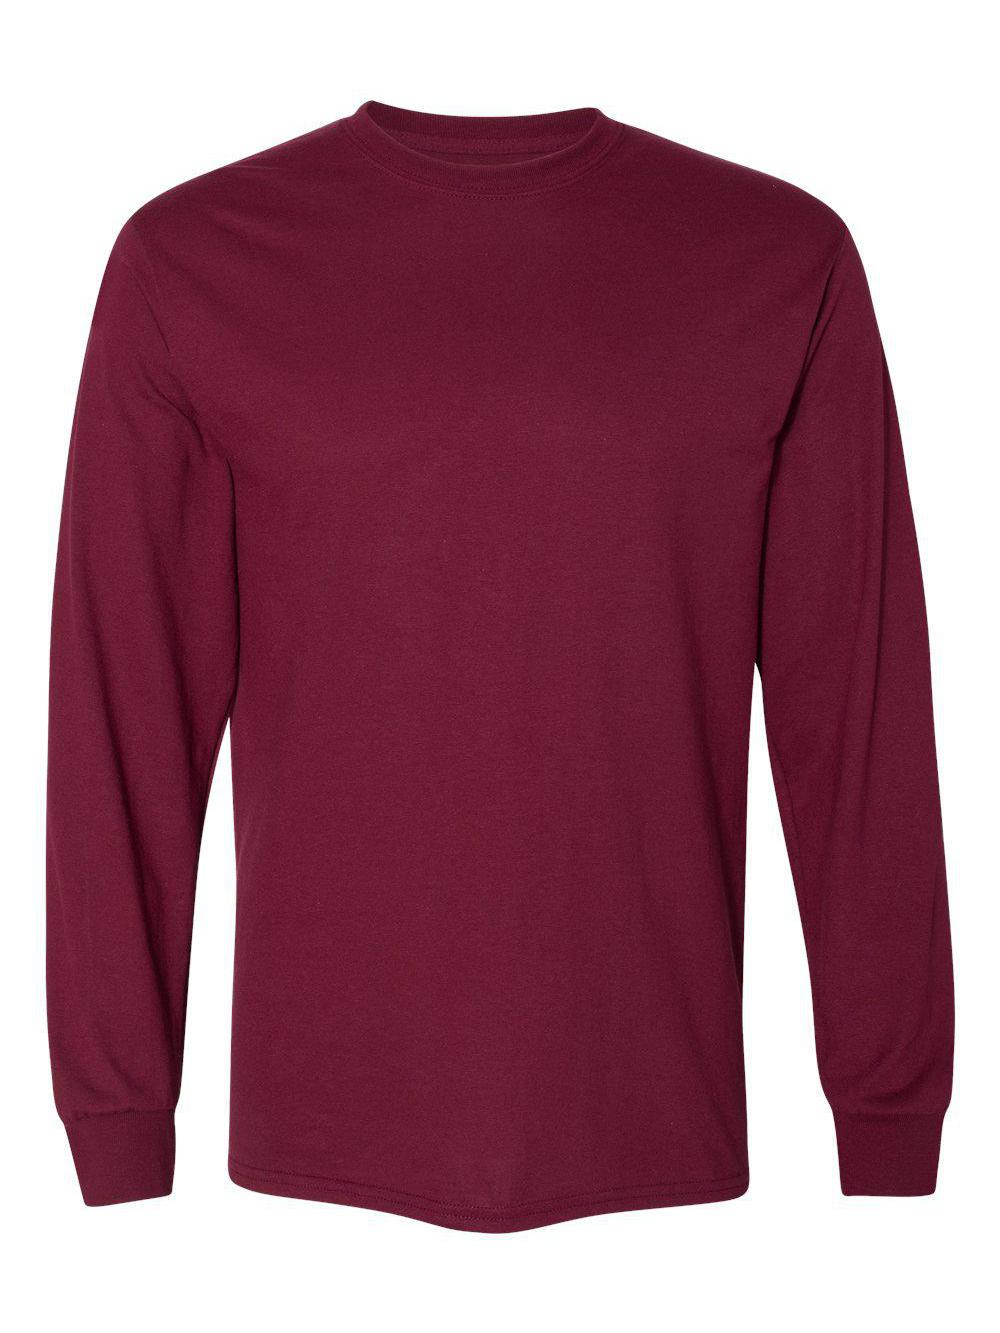 Gildan-DryBlend-50-50-Long-Sleeve-T-Shirt-8400 thumbnail 21